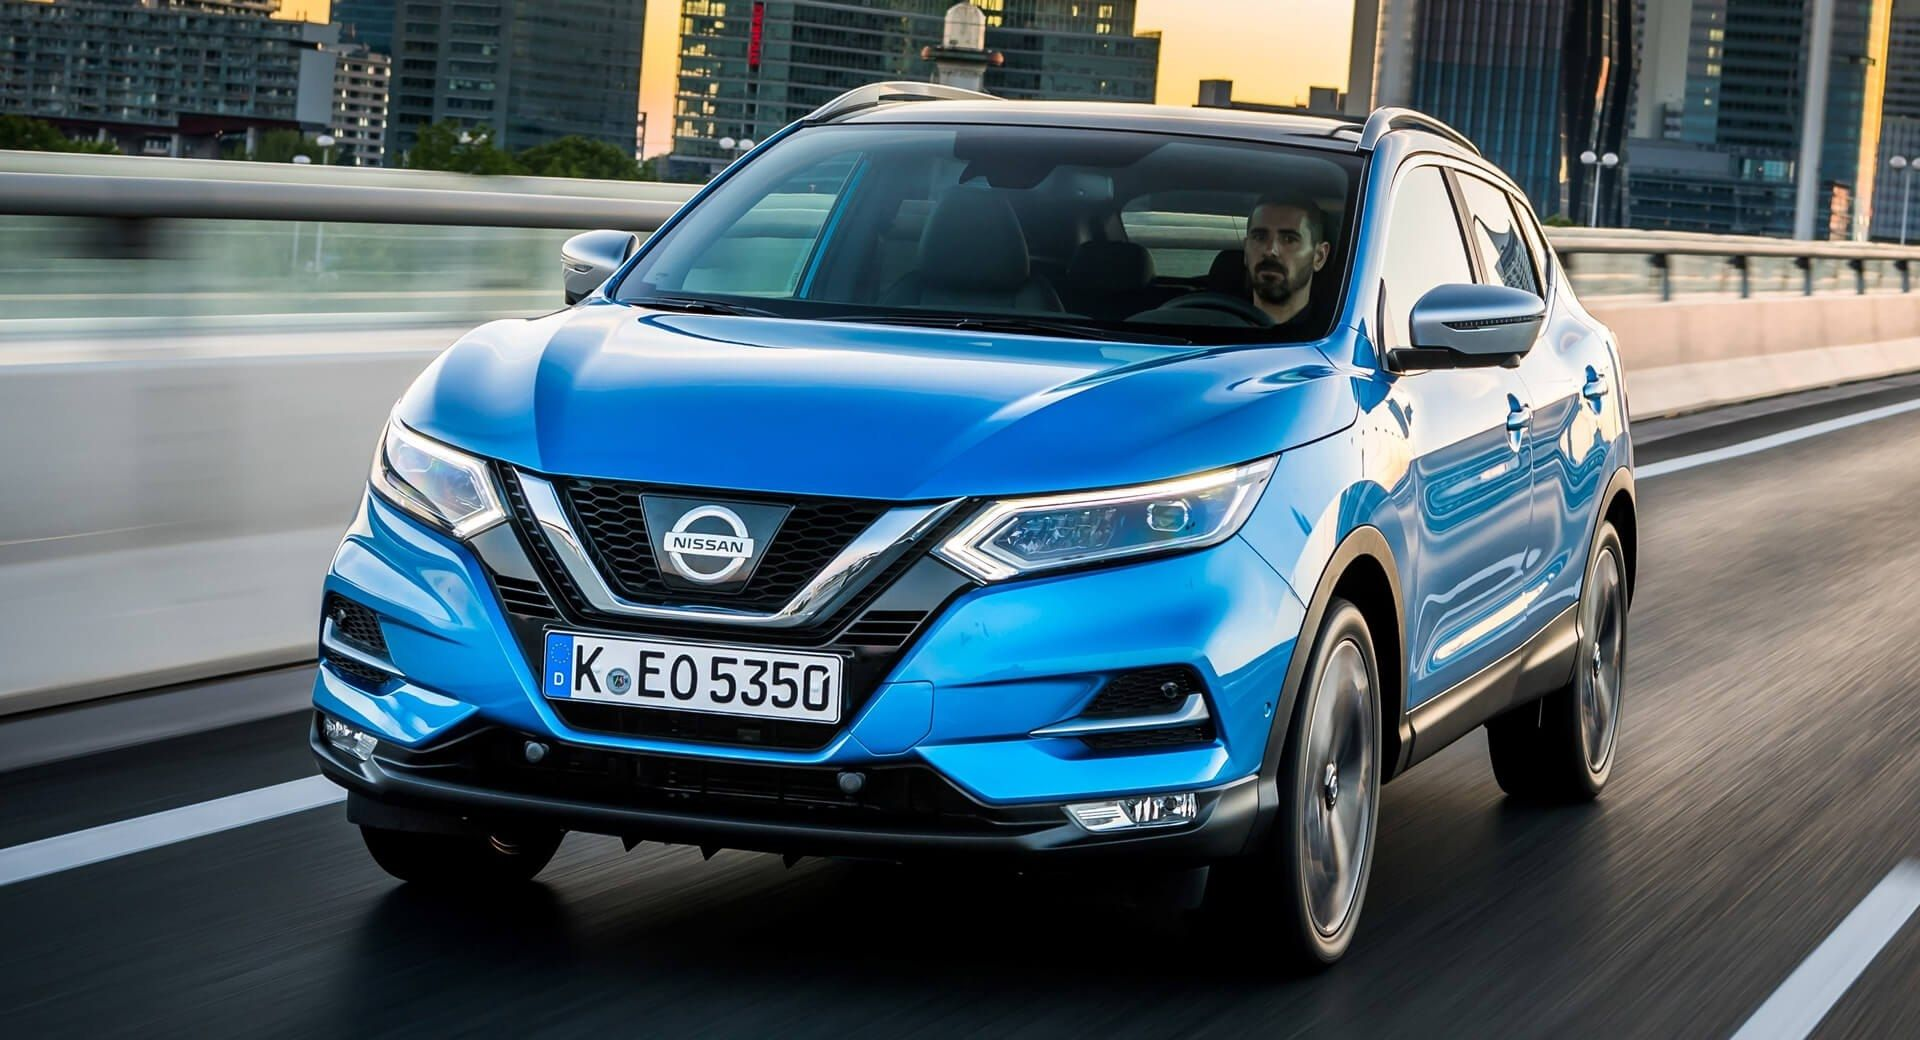 When Will Nissan Qashqai 2020 Hybrid Come Out Nissan Nissan Qashqai Generation